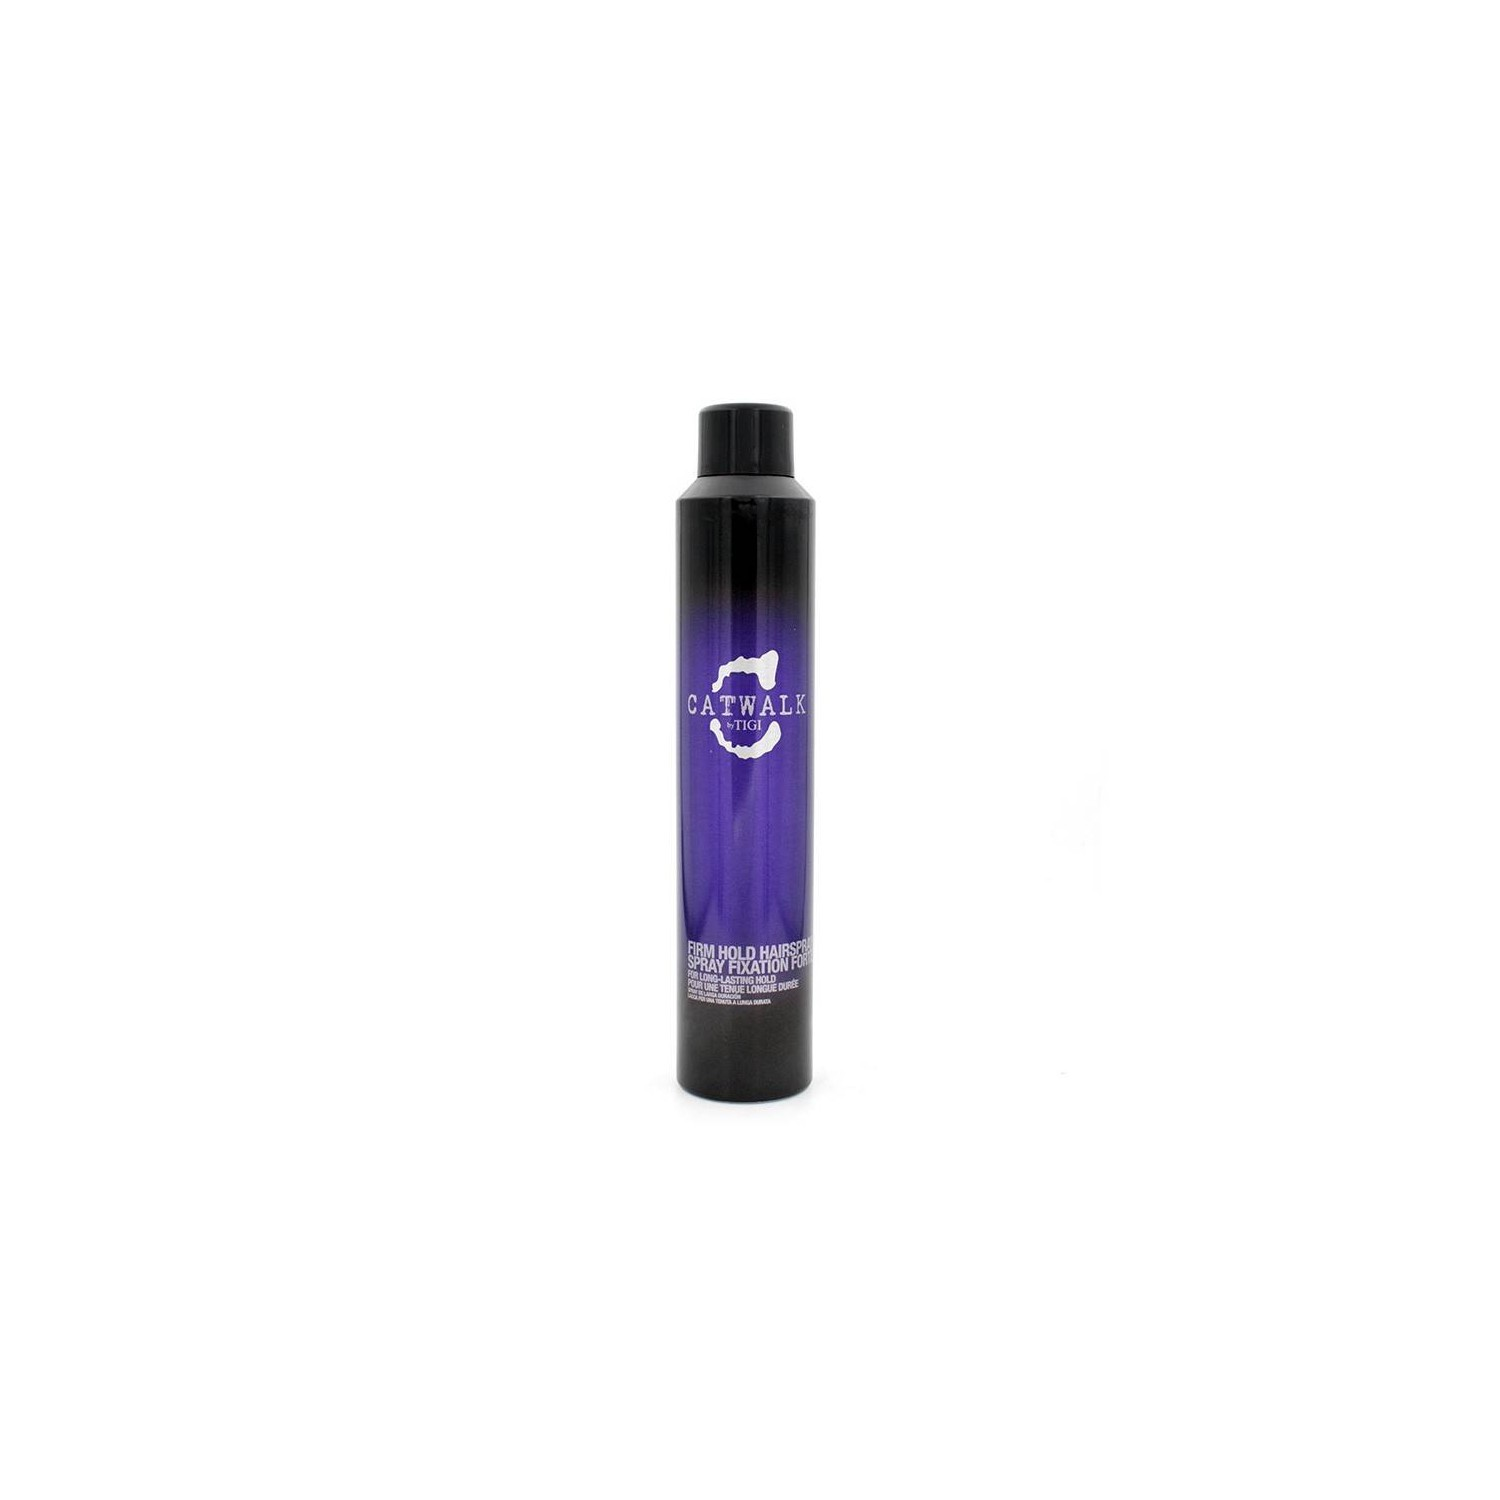 Tigi Catwalk Your Highness Firm Hold Hairspray 300